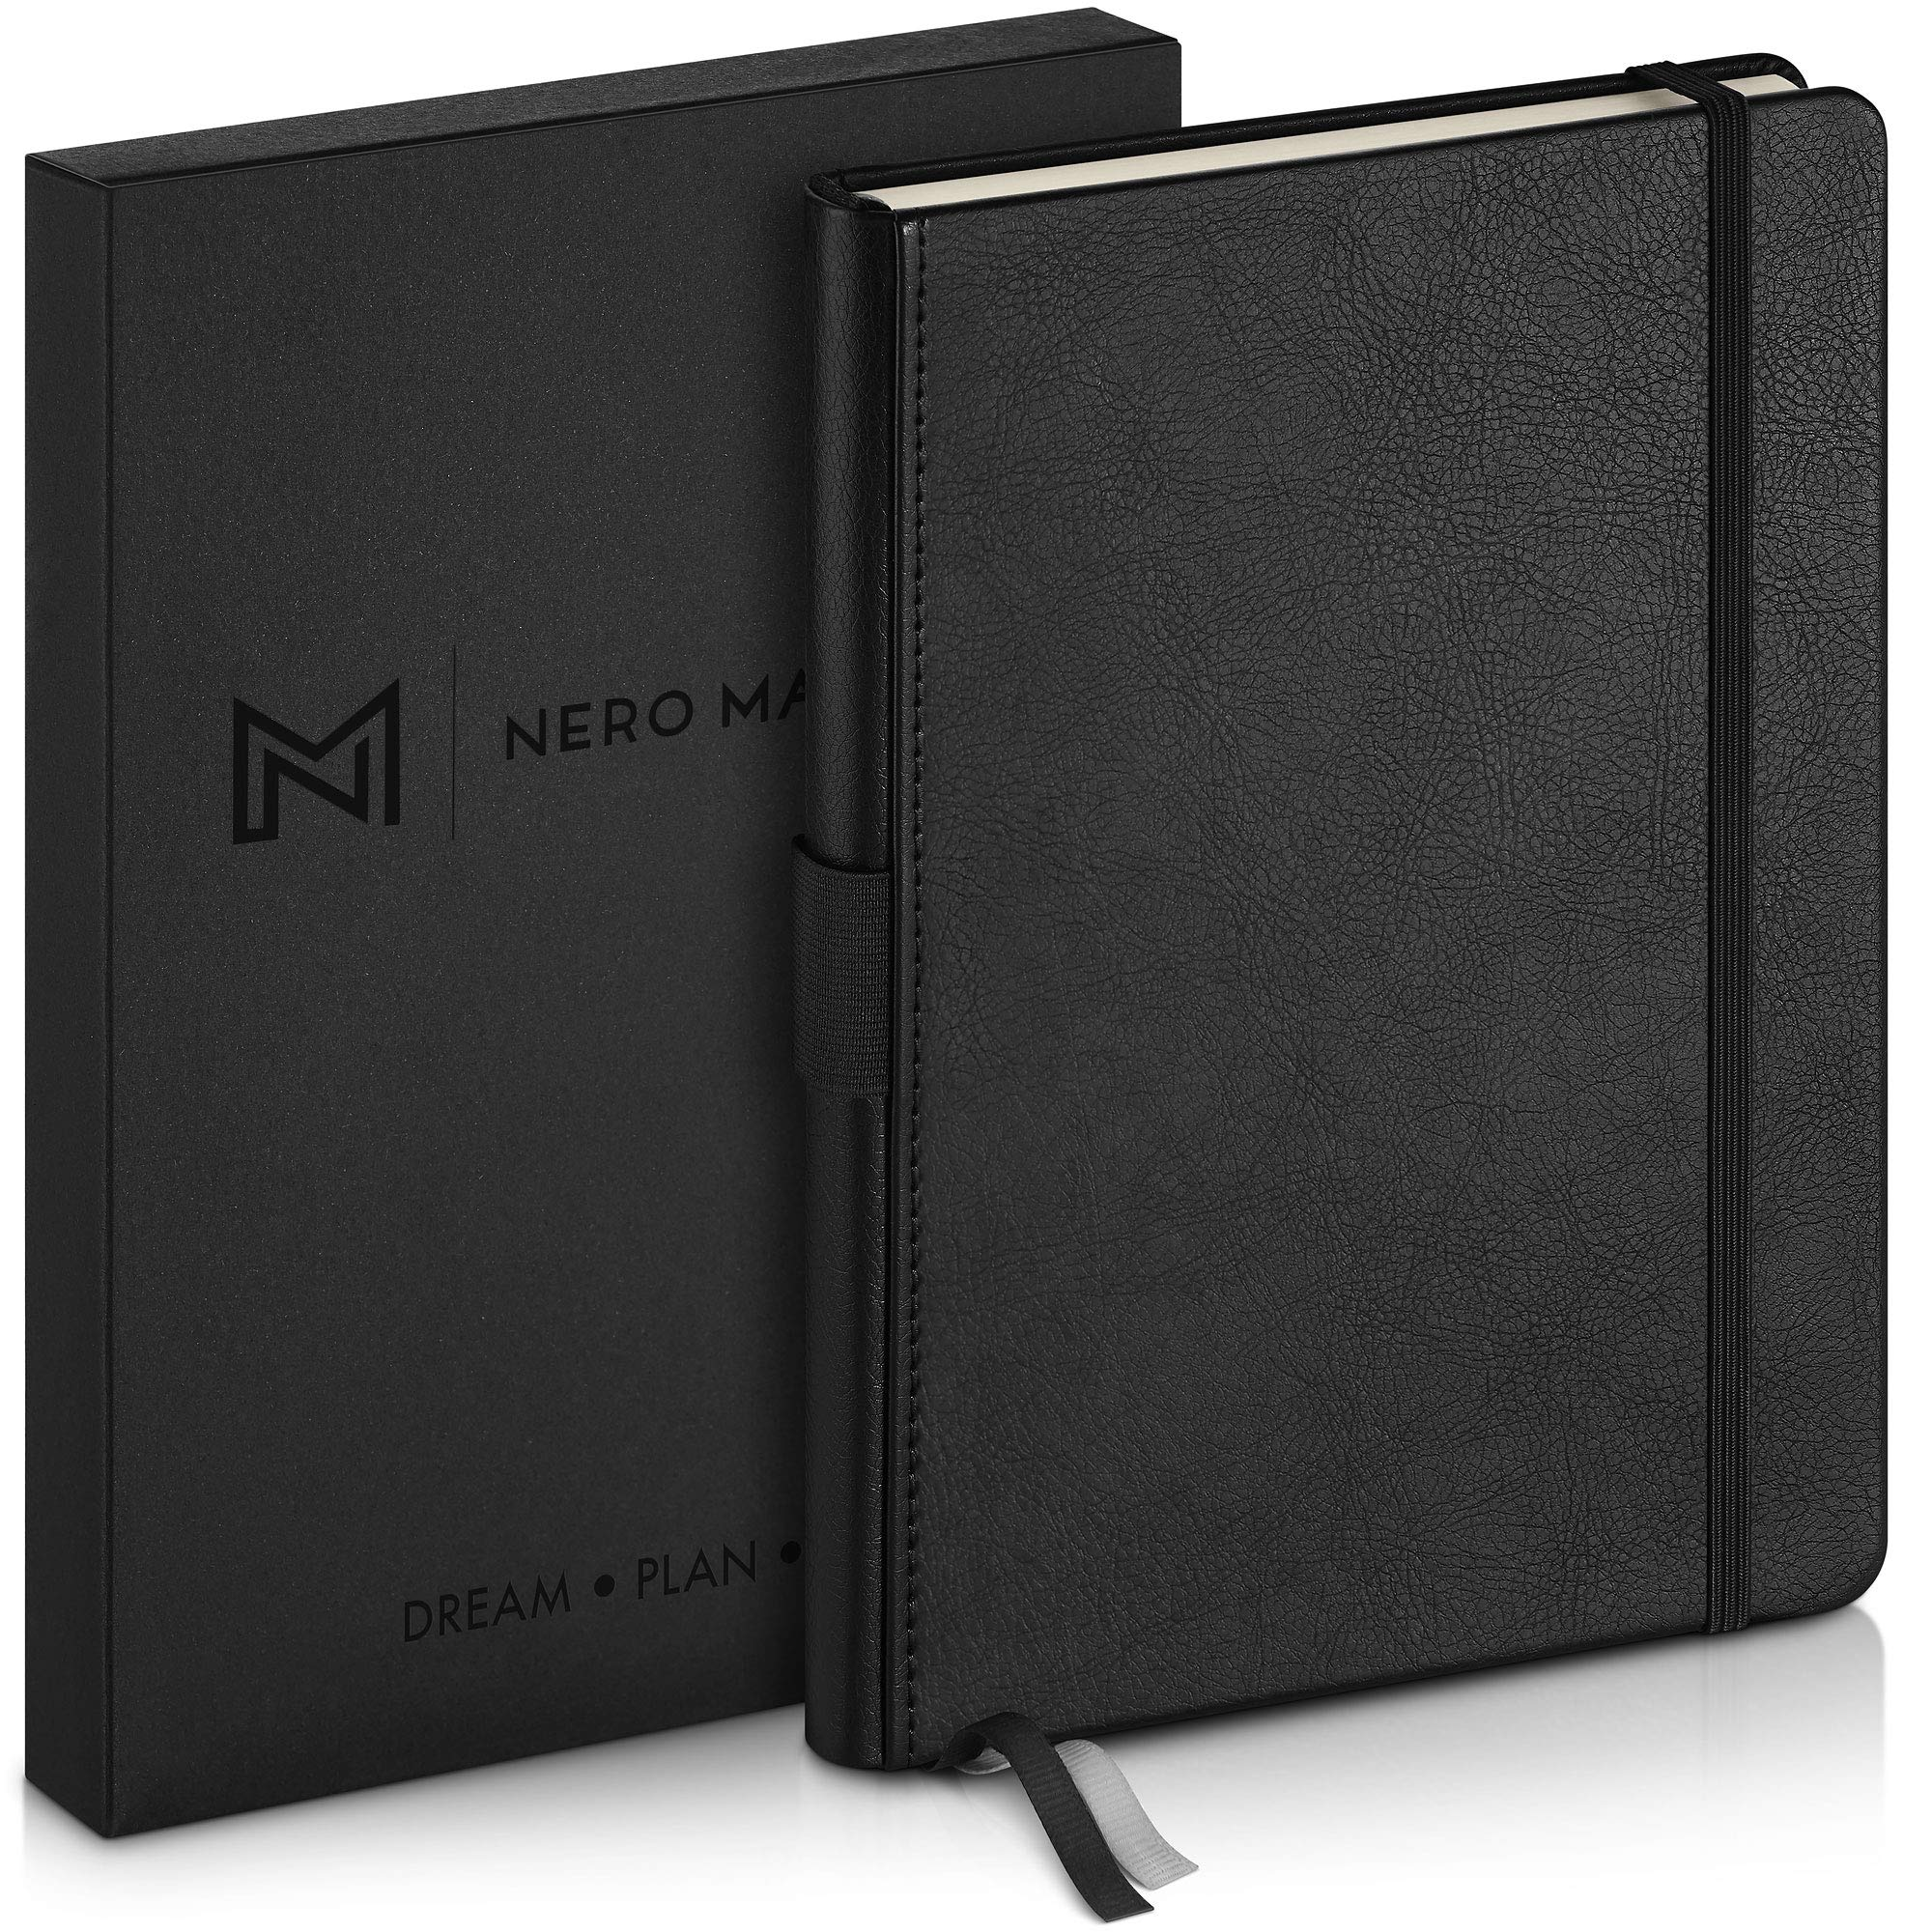 """NERO MANETTI Black Premium Notebook - Hardcover Vegan Leather 8.4"""" x 5.7"""" A5 College Ruled Lined Journal, Classic Notebook, Executive Notebook – 160 Pages, Acid-Free Paper Resists Ink Bleeding"""